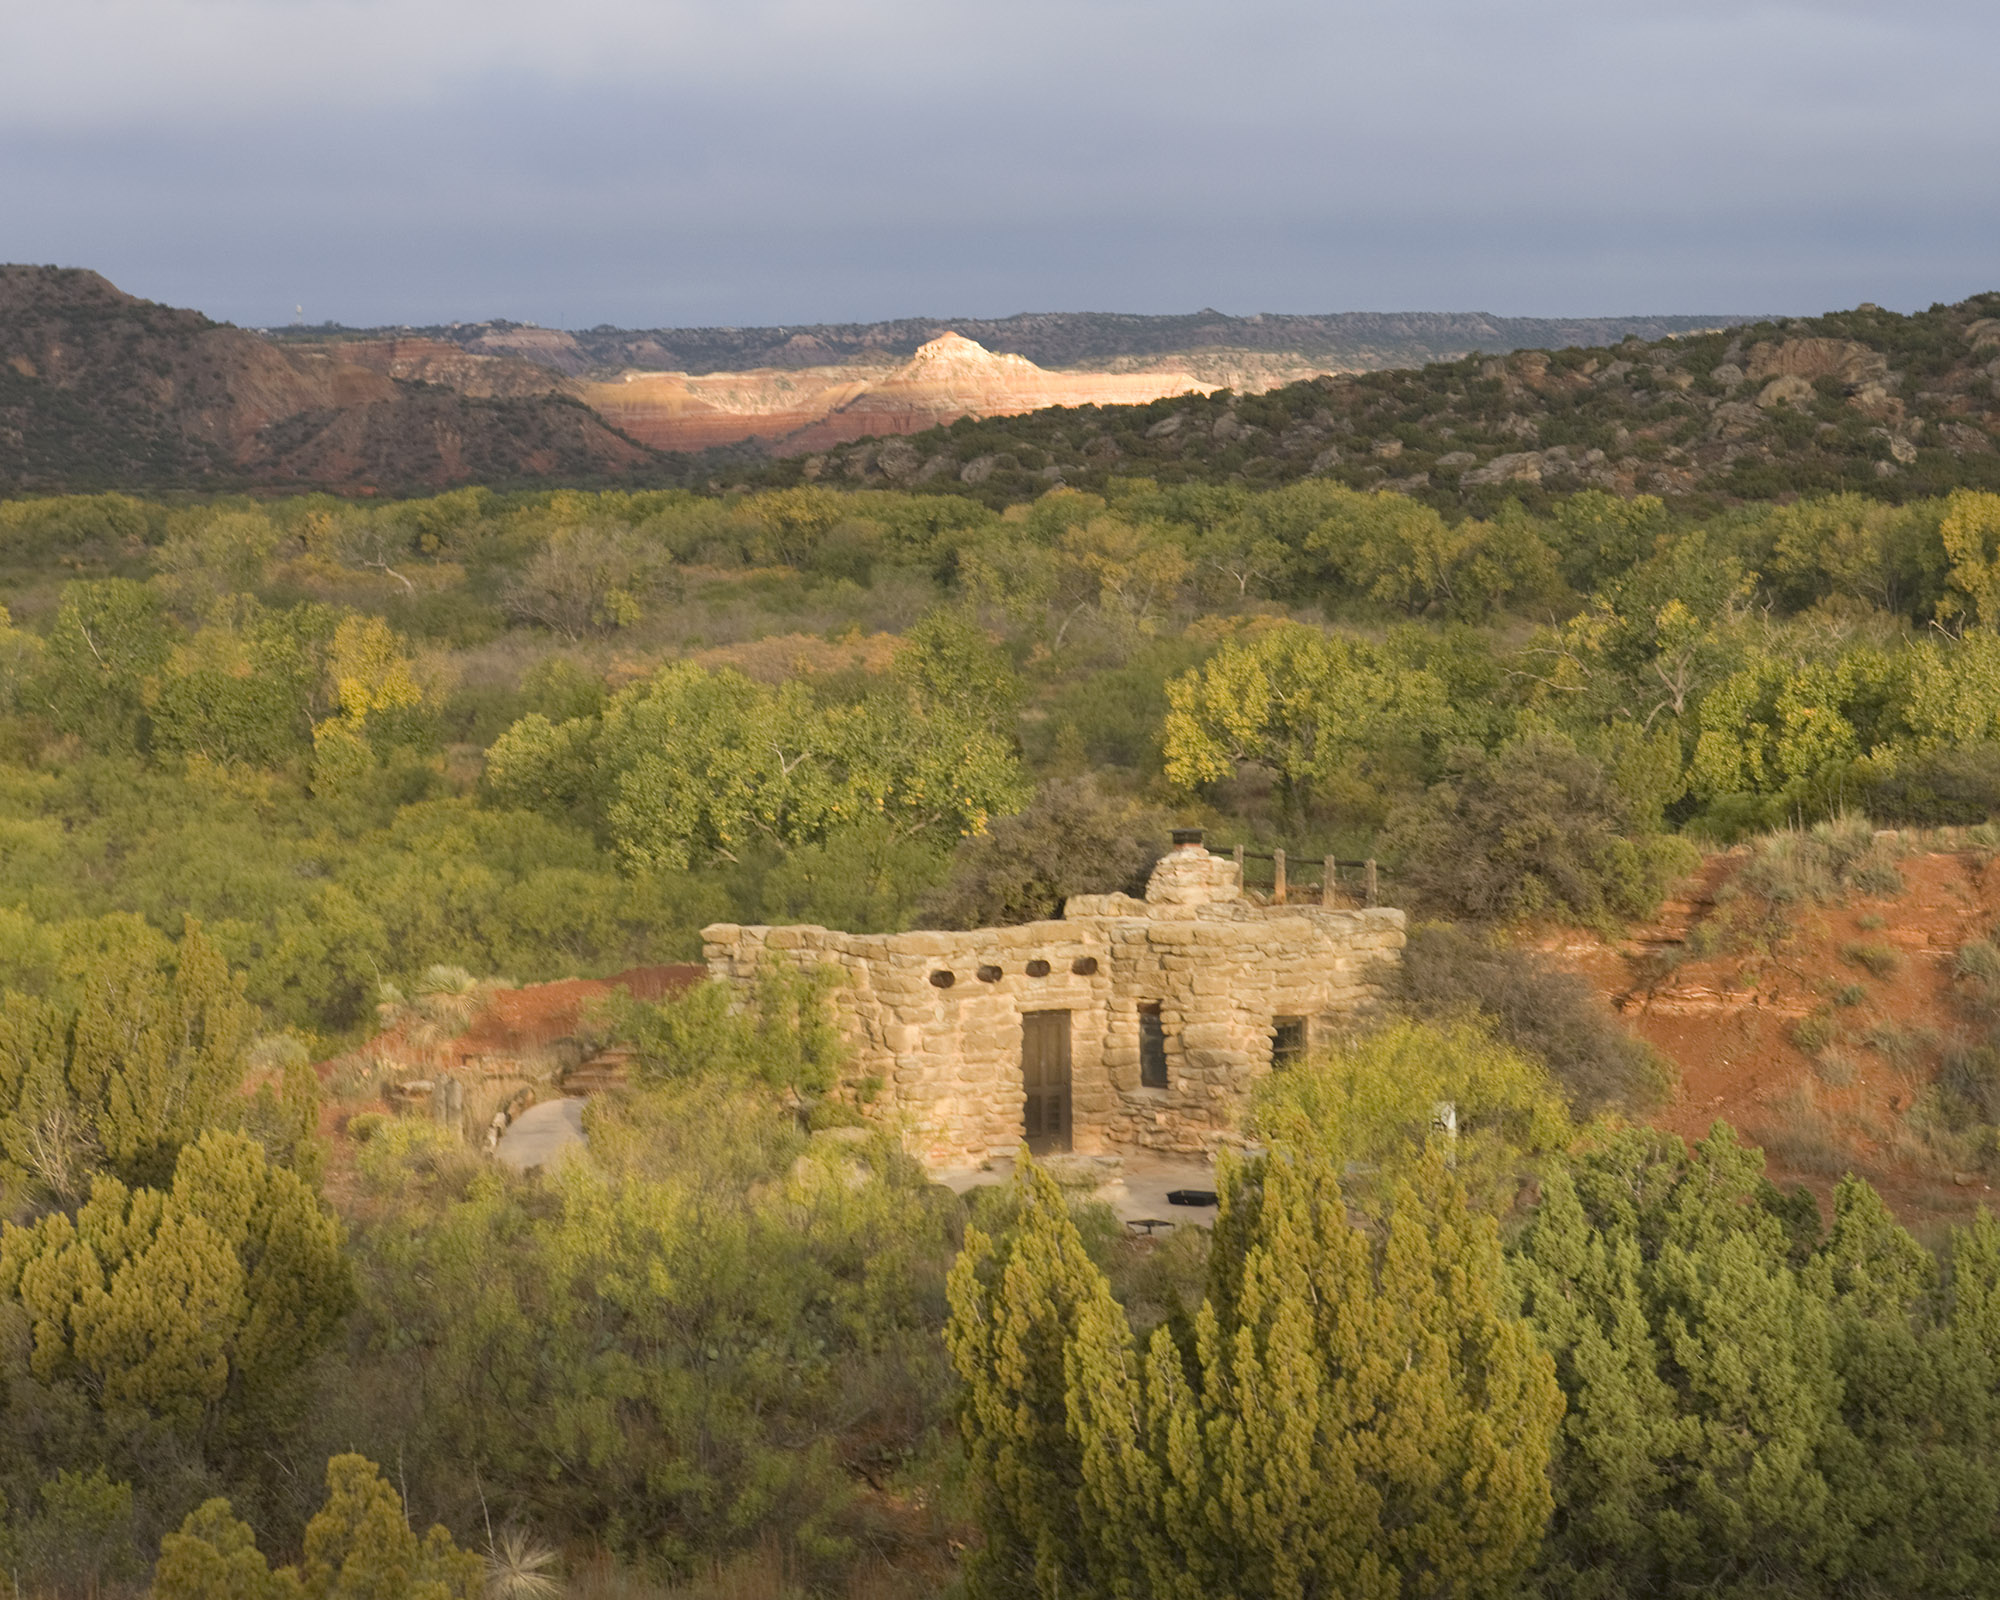 Palo Duro Canyon State Park, Image by Earl Nottingham, © Texas Parks and Wildlife Department